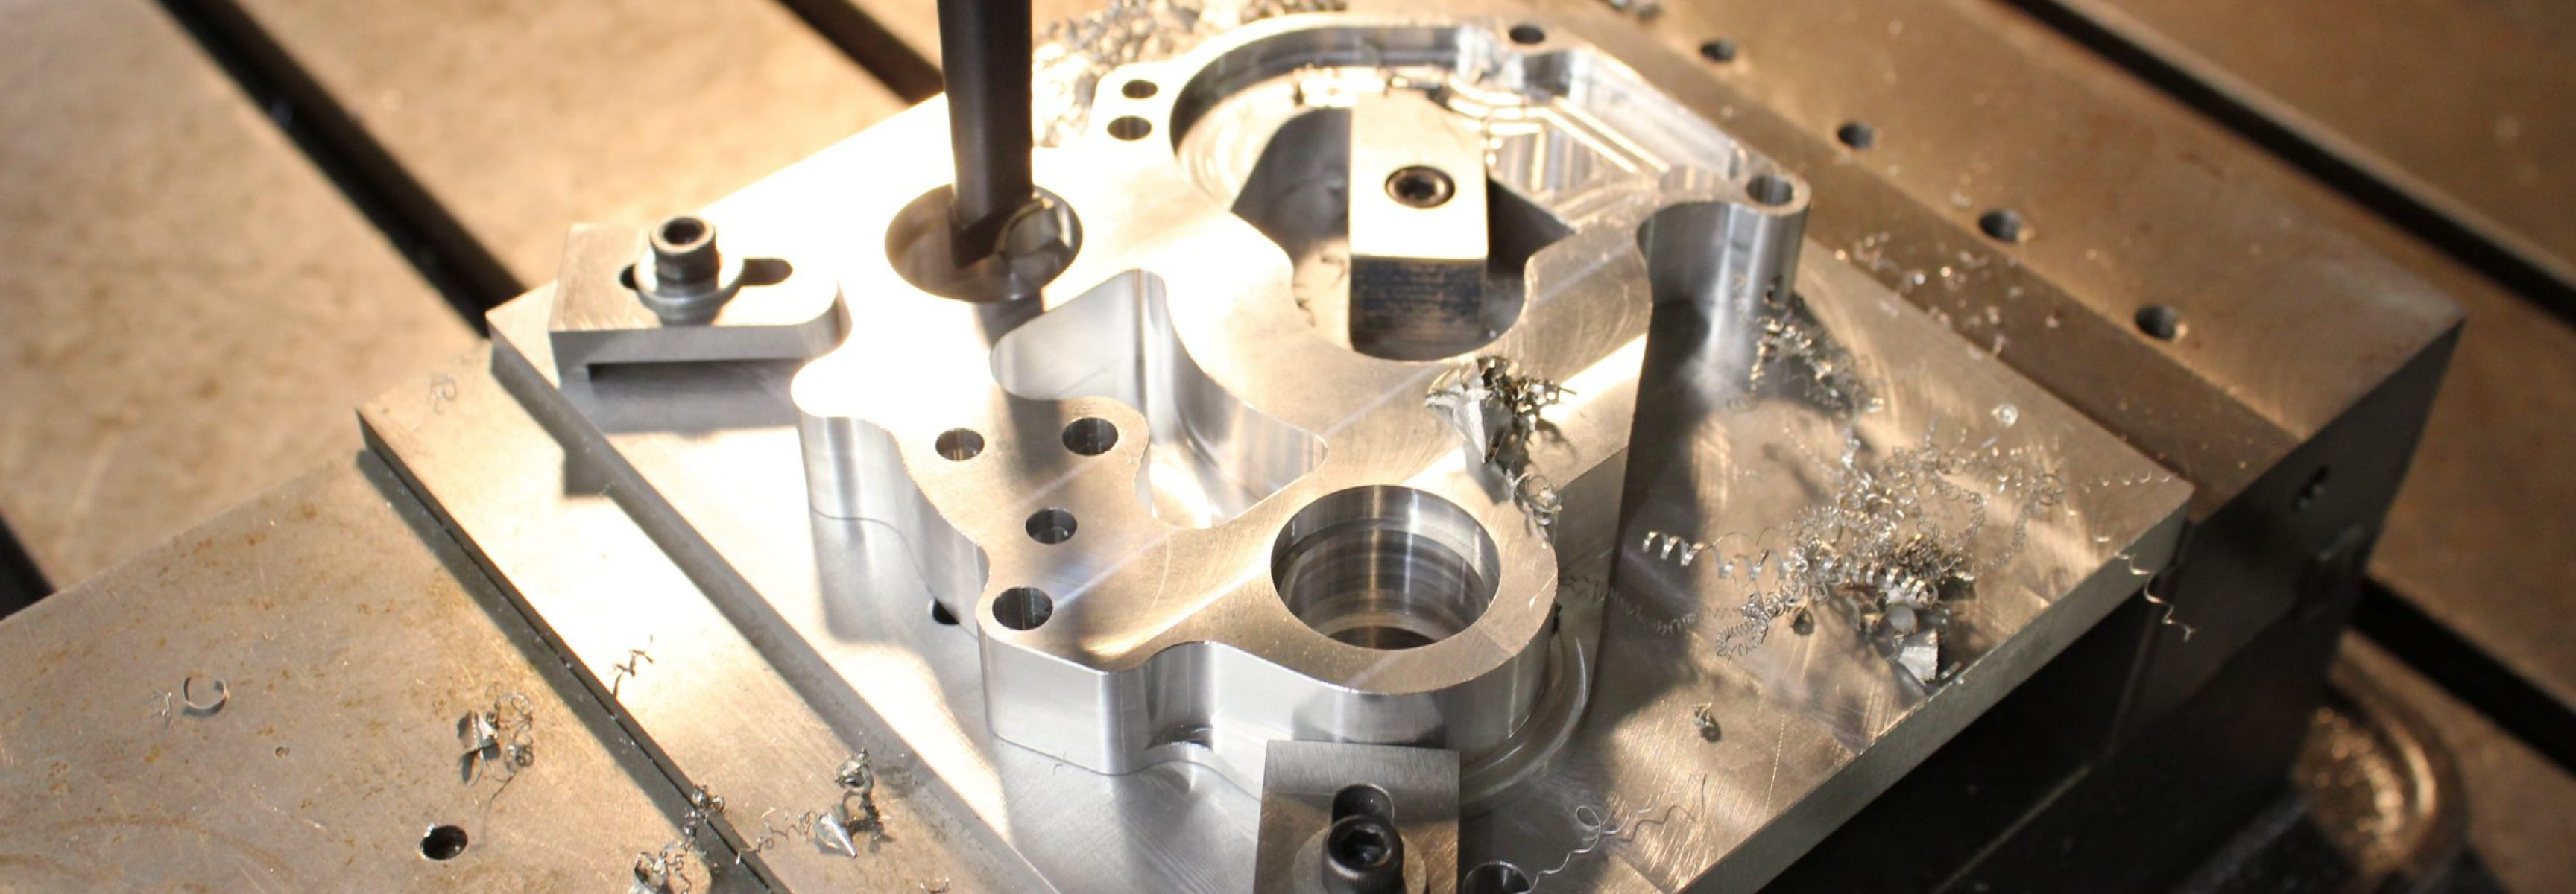 CNC-Precision-Machining-Jig-Boring-scaled